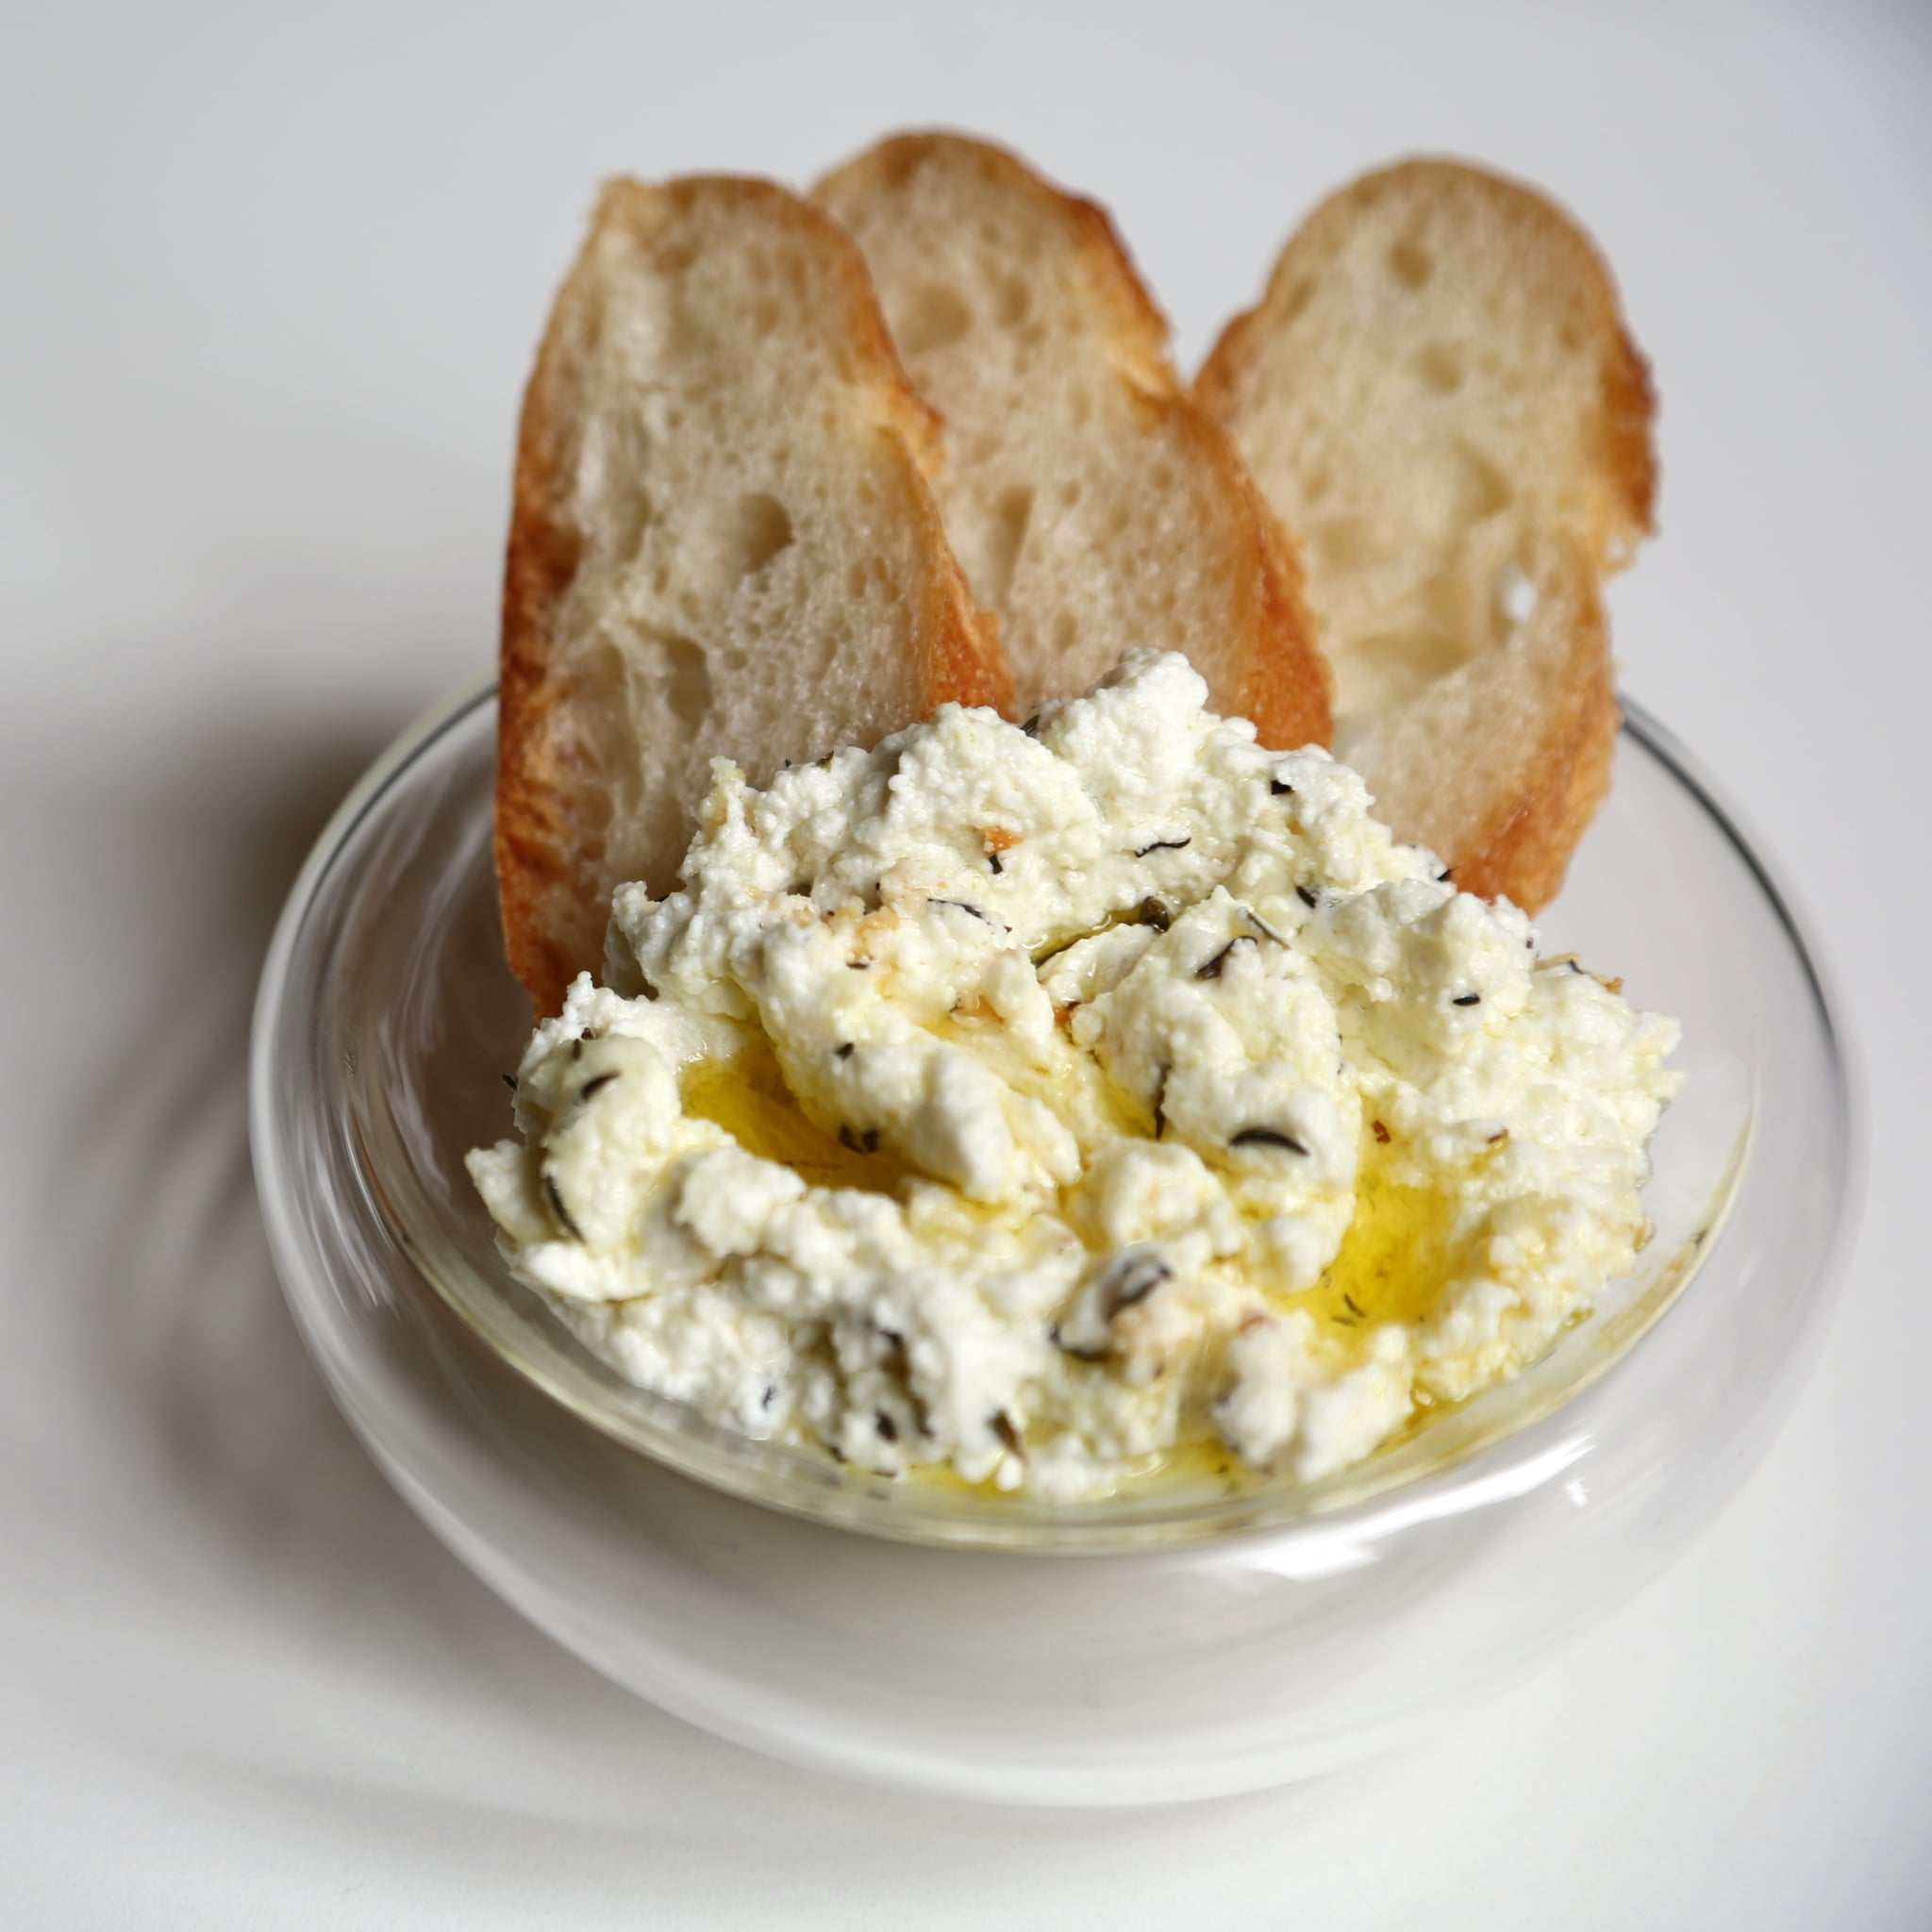 Baked Goat Cheese